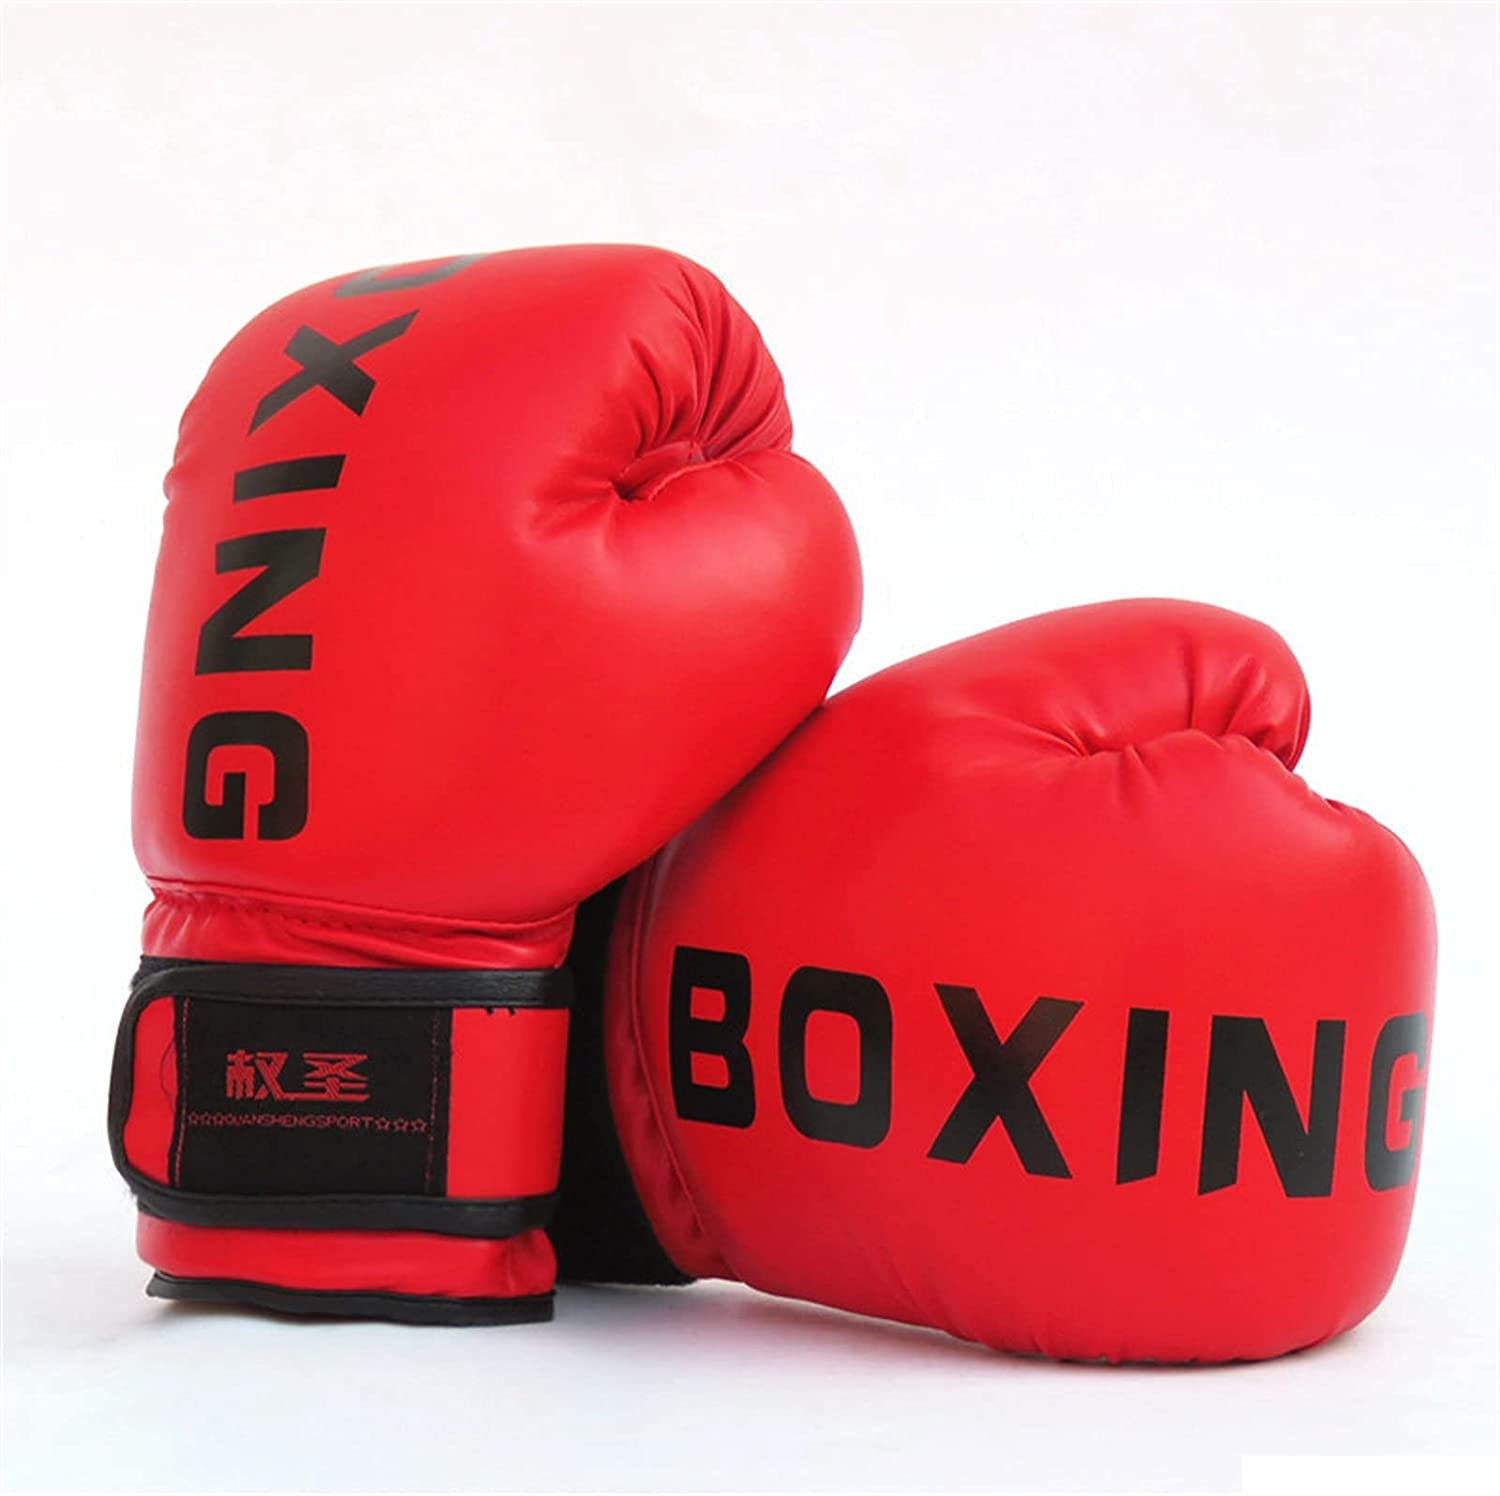 JINSHANDIANLIAO New 2-8 Years Old Fight Gloves cheap Boxing Fashion Children's